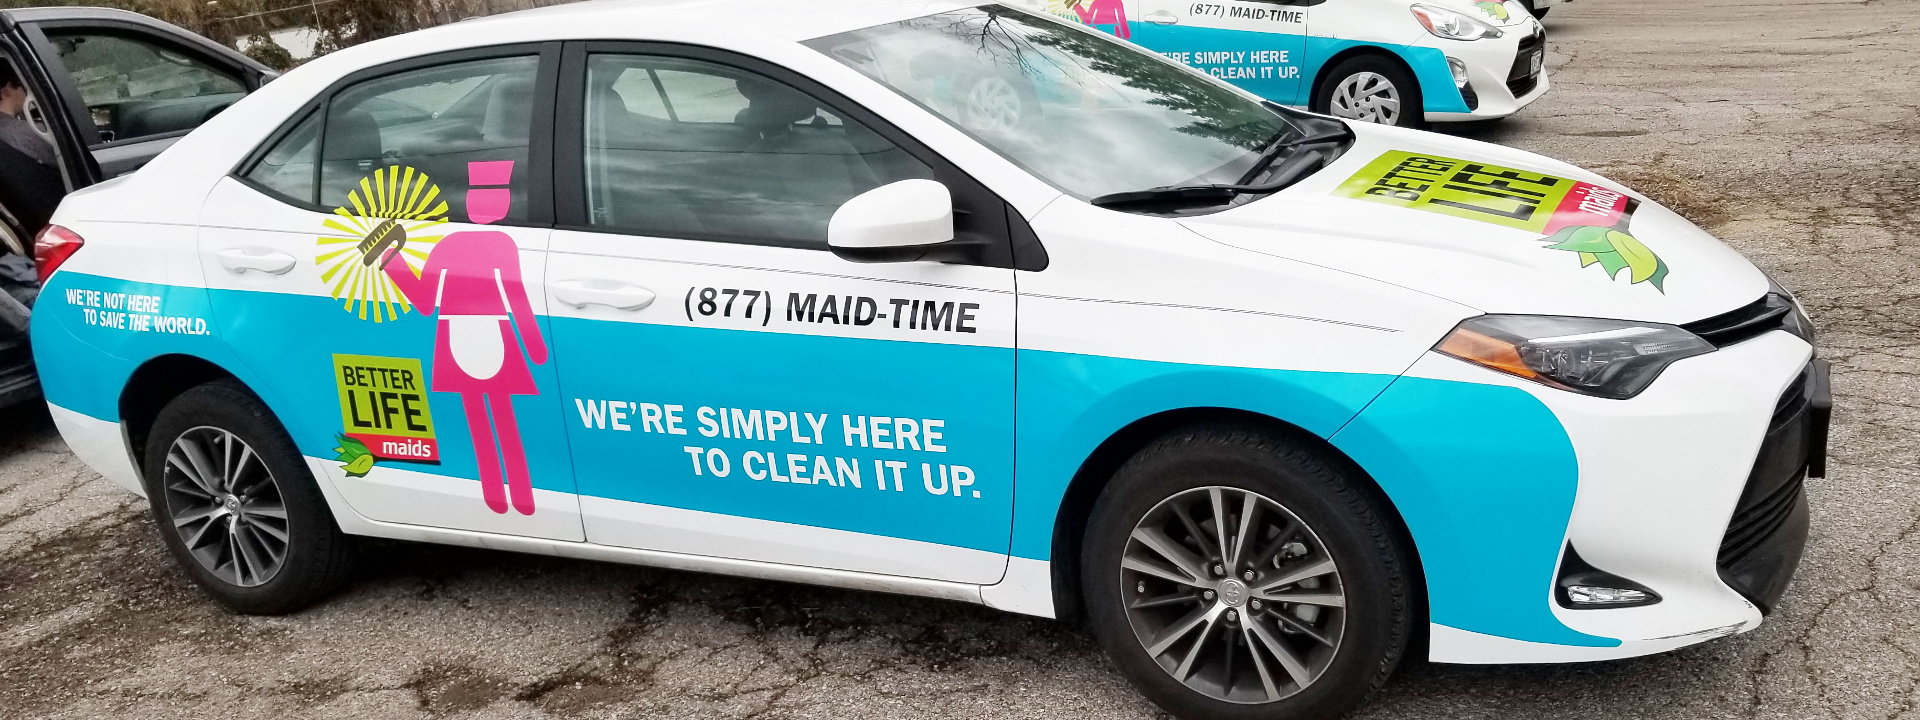 Vehicle Wraps Offer BIG Opportunities